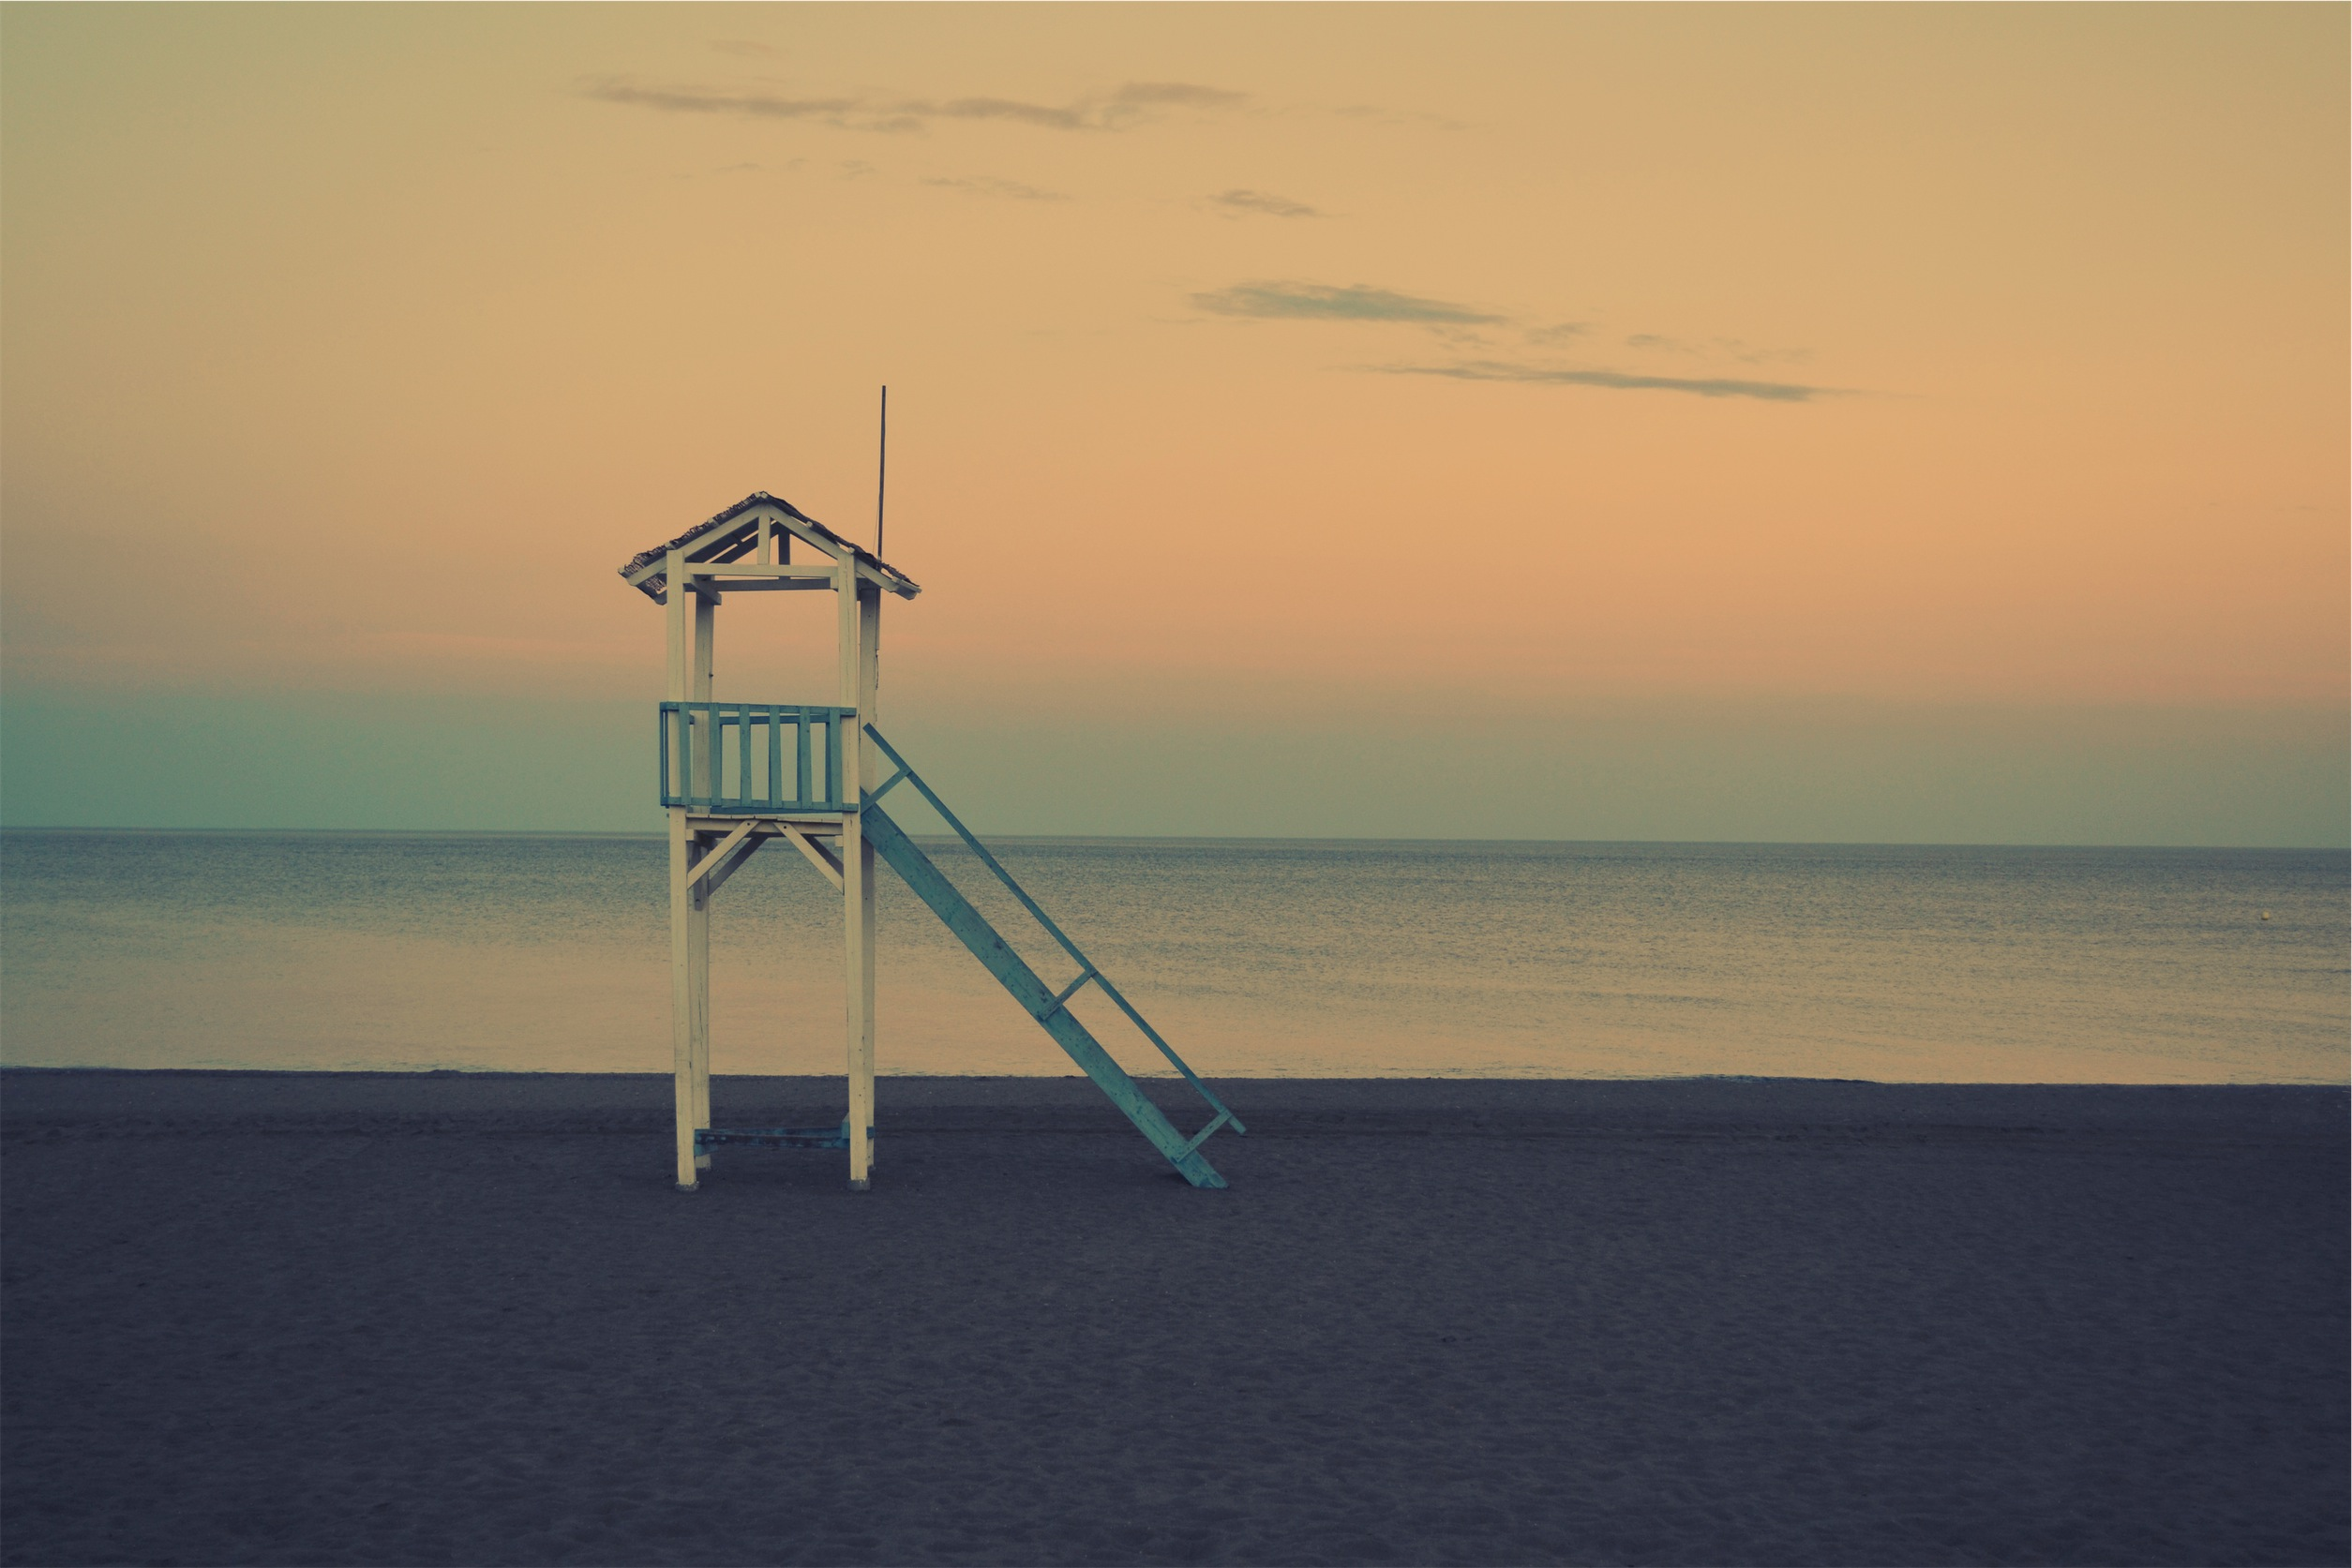 Lonely beach, lifeguards, beach, solitude, sunset, tranquility, lookout